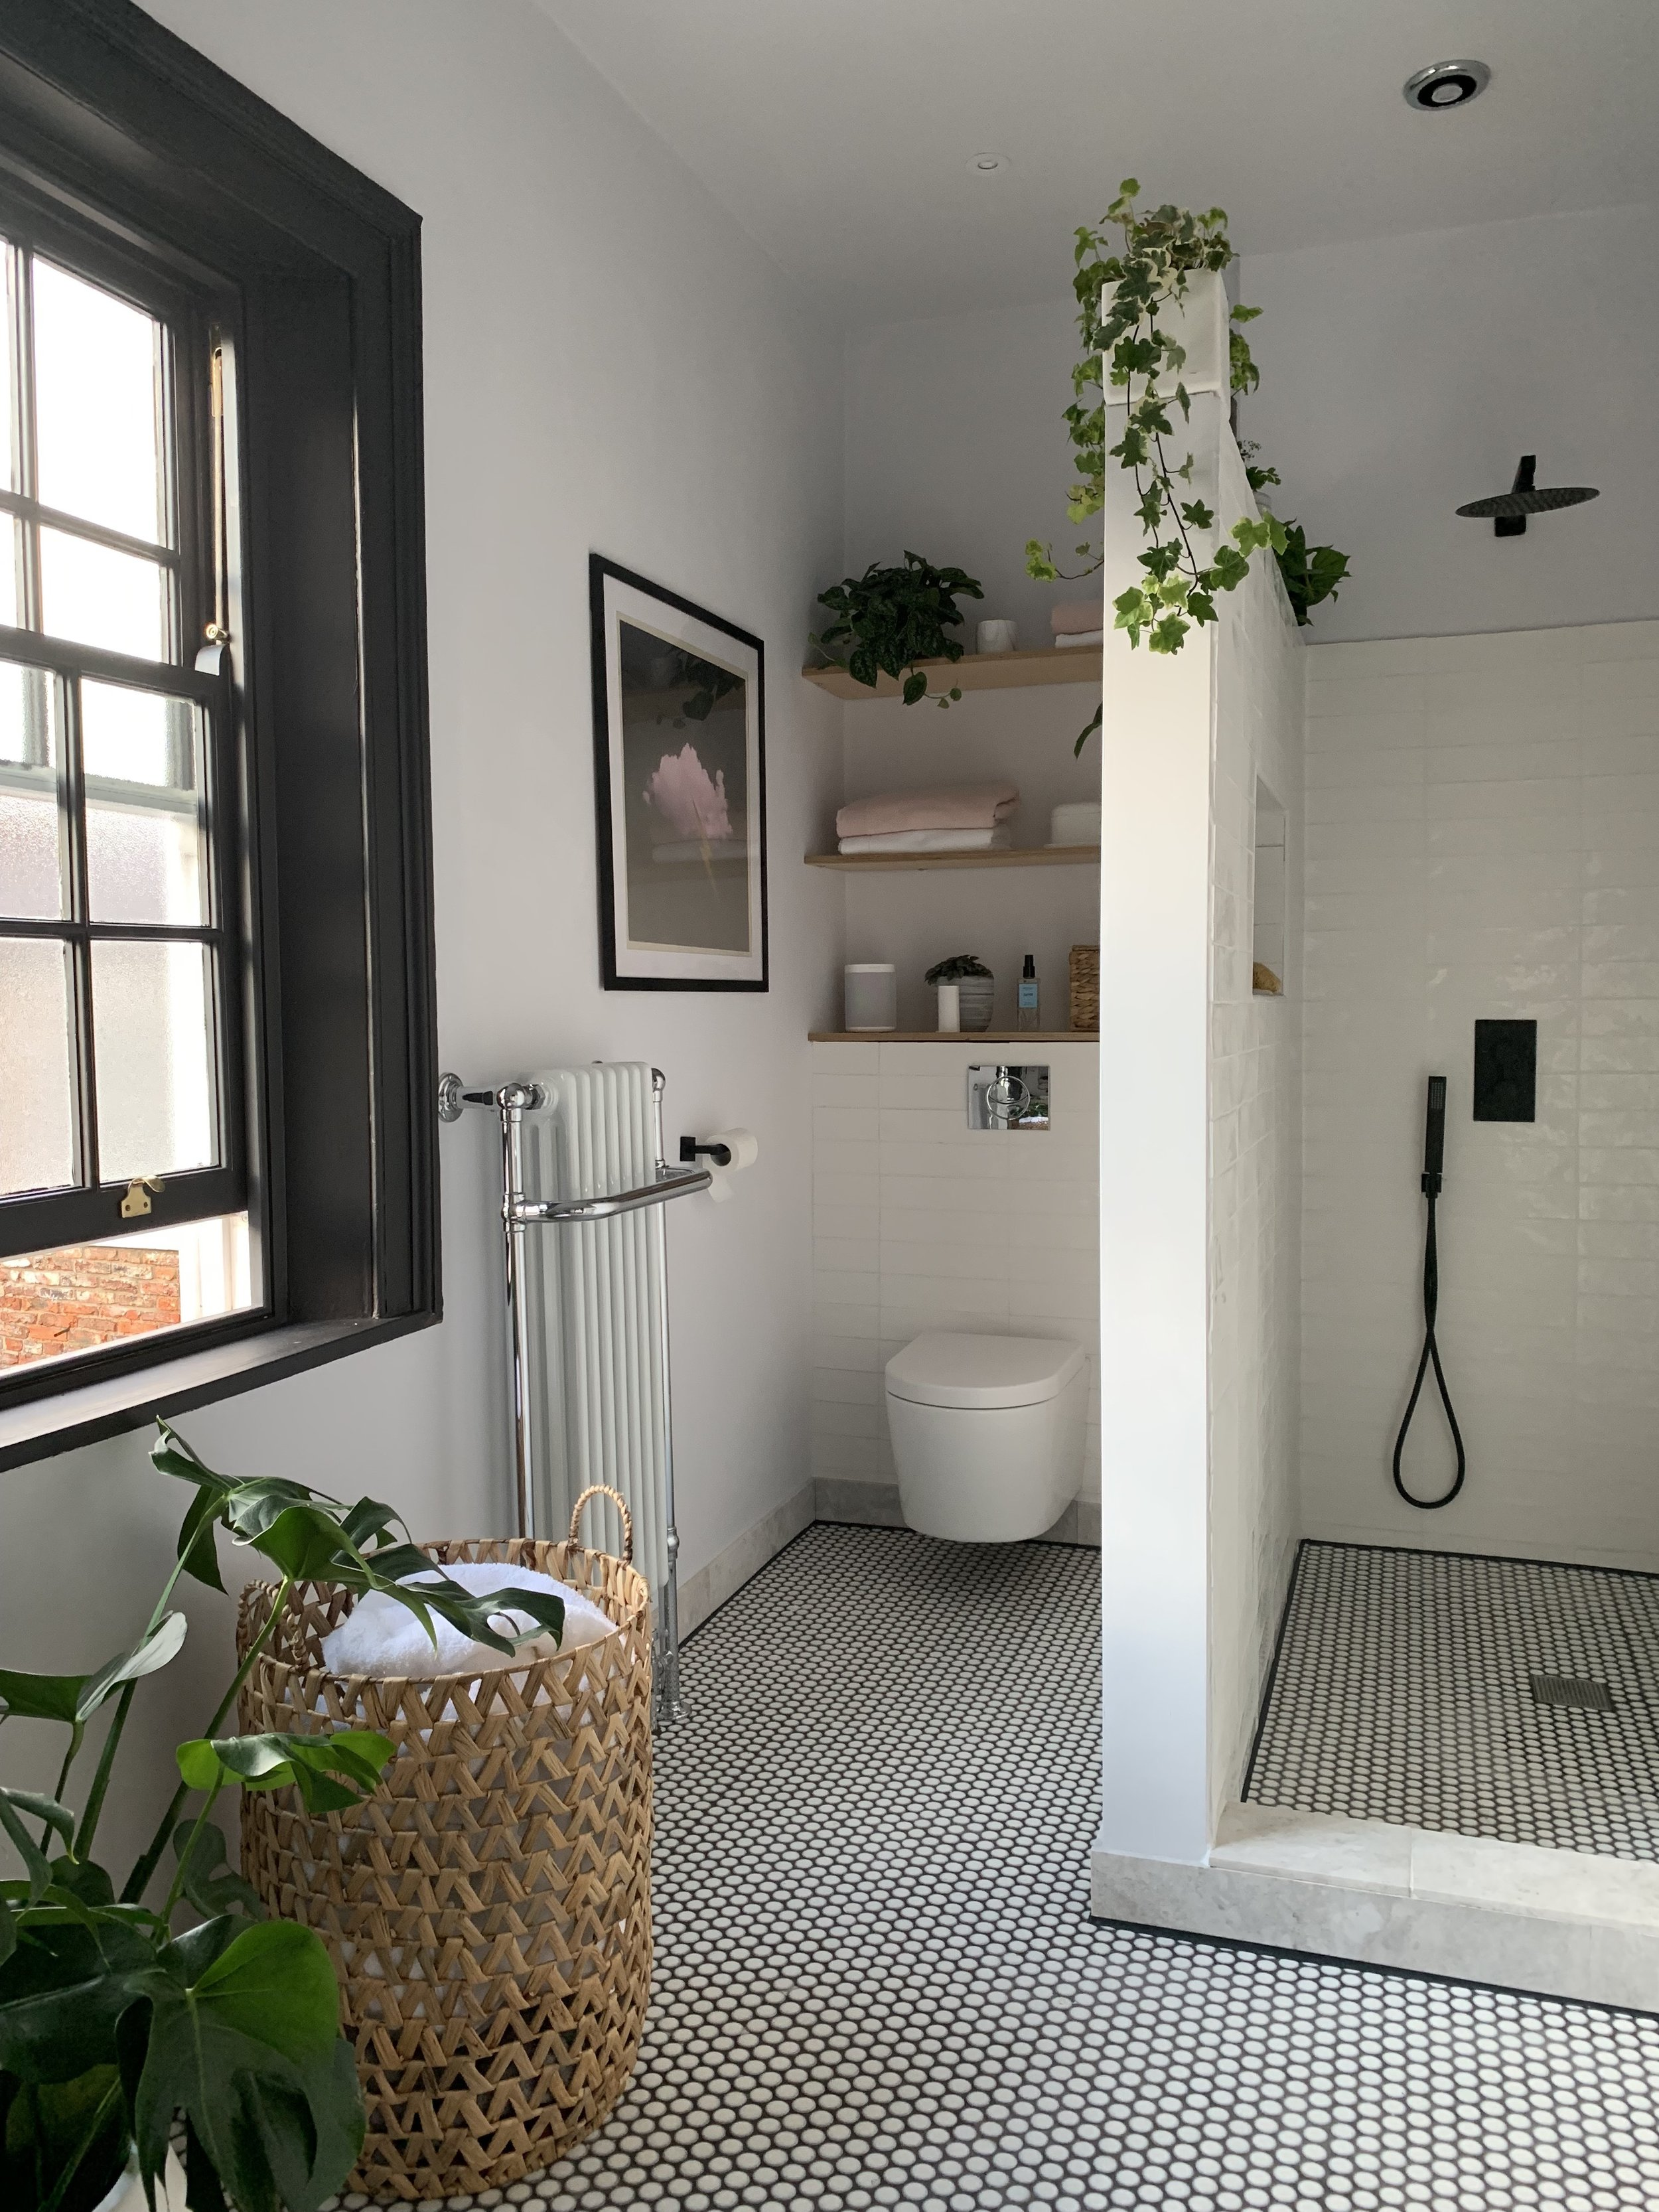 I kept the basics in this bathroom neutral so that I can add colour or swap around the accessories.